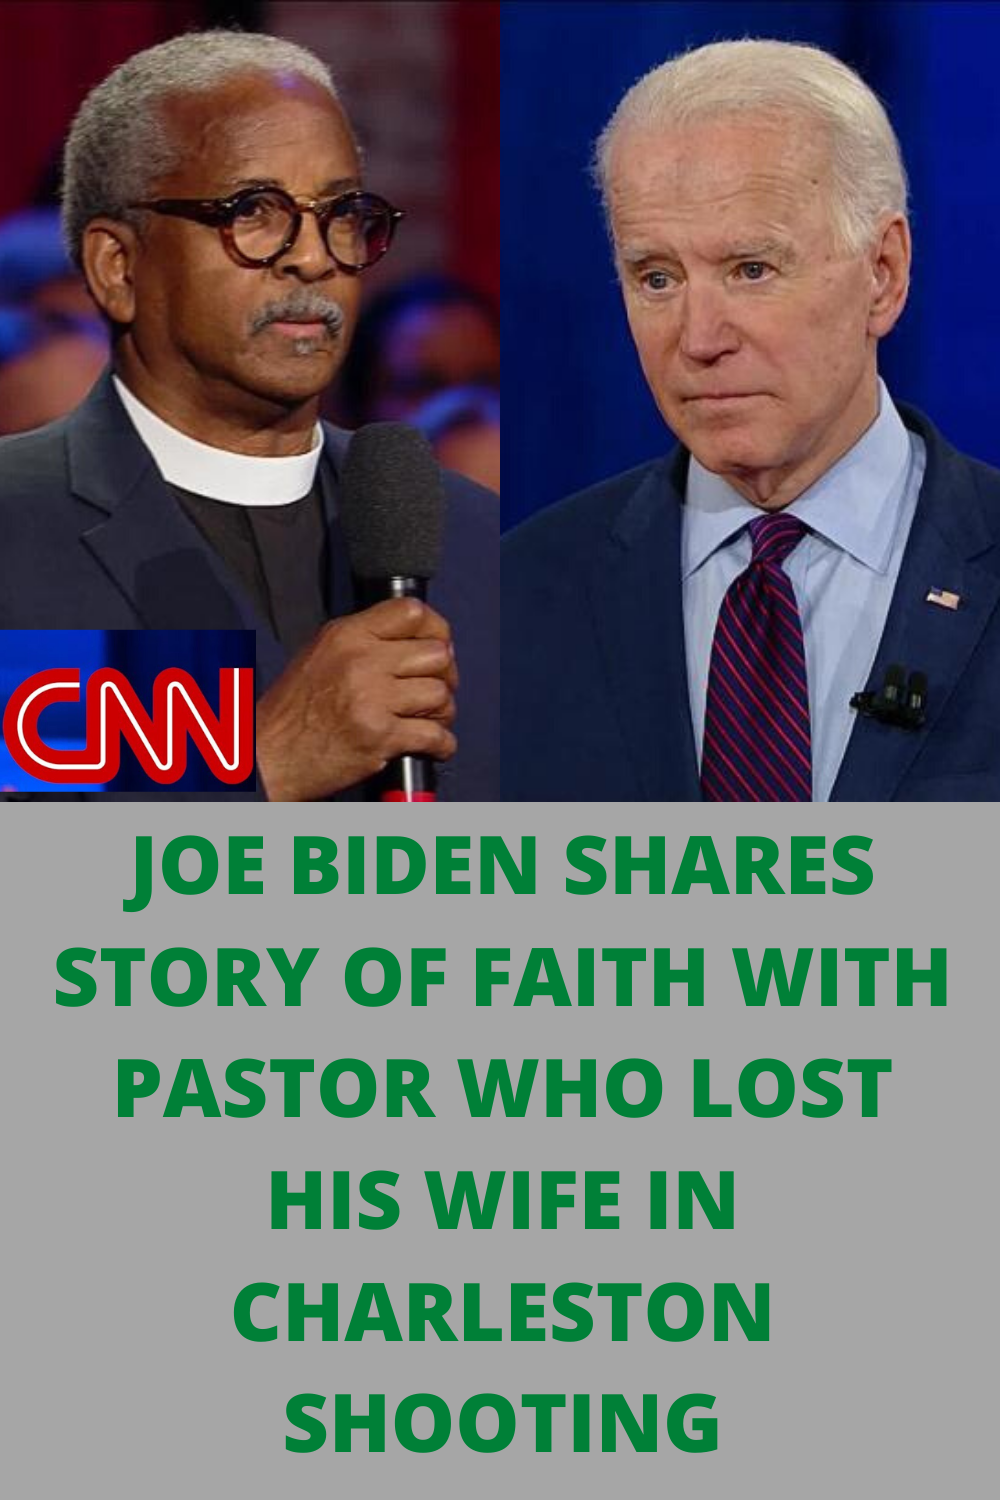 Joe Biden Shares Story Of Faith With A Pastor Who Lost His Wife In Charleston Shooting In 2020 Joe Biden Share Story Todays News Headlines